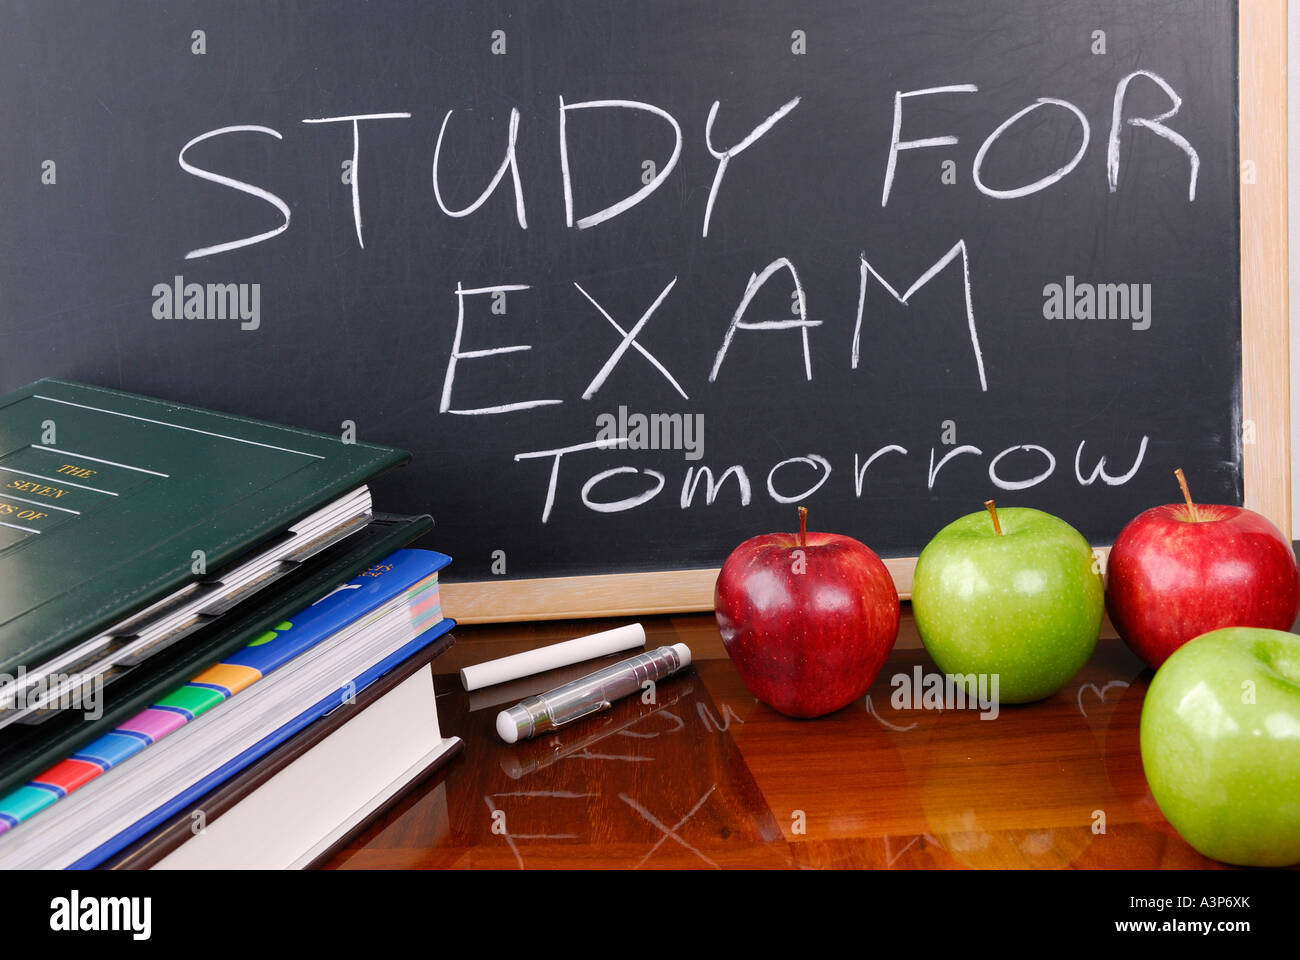 Message on blackboard to study for school exams with books and apples - Stock Image